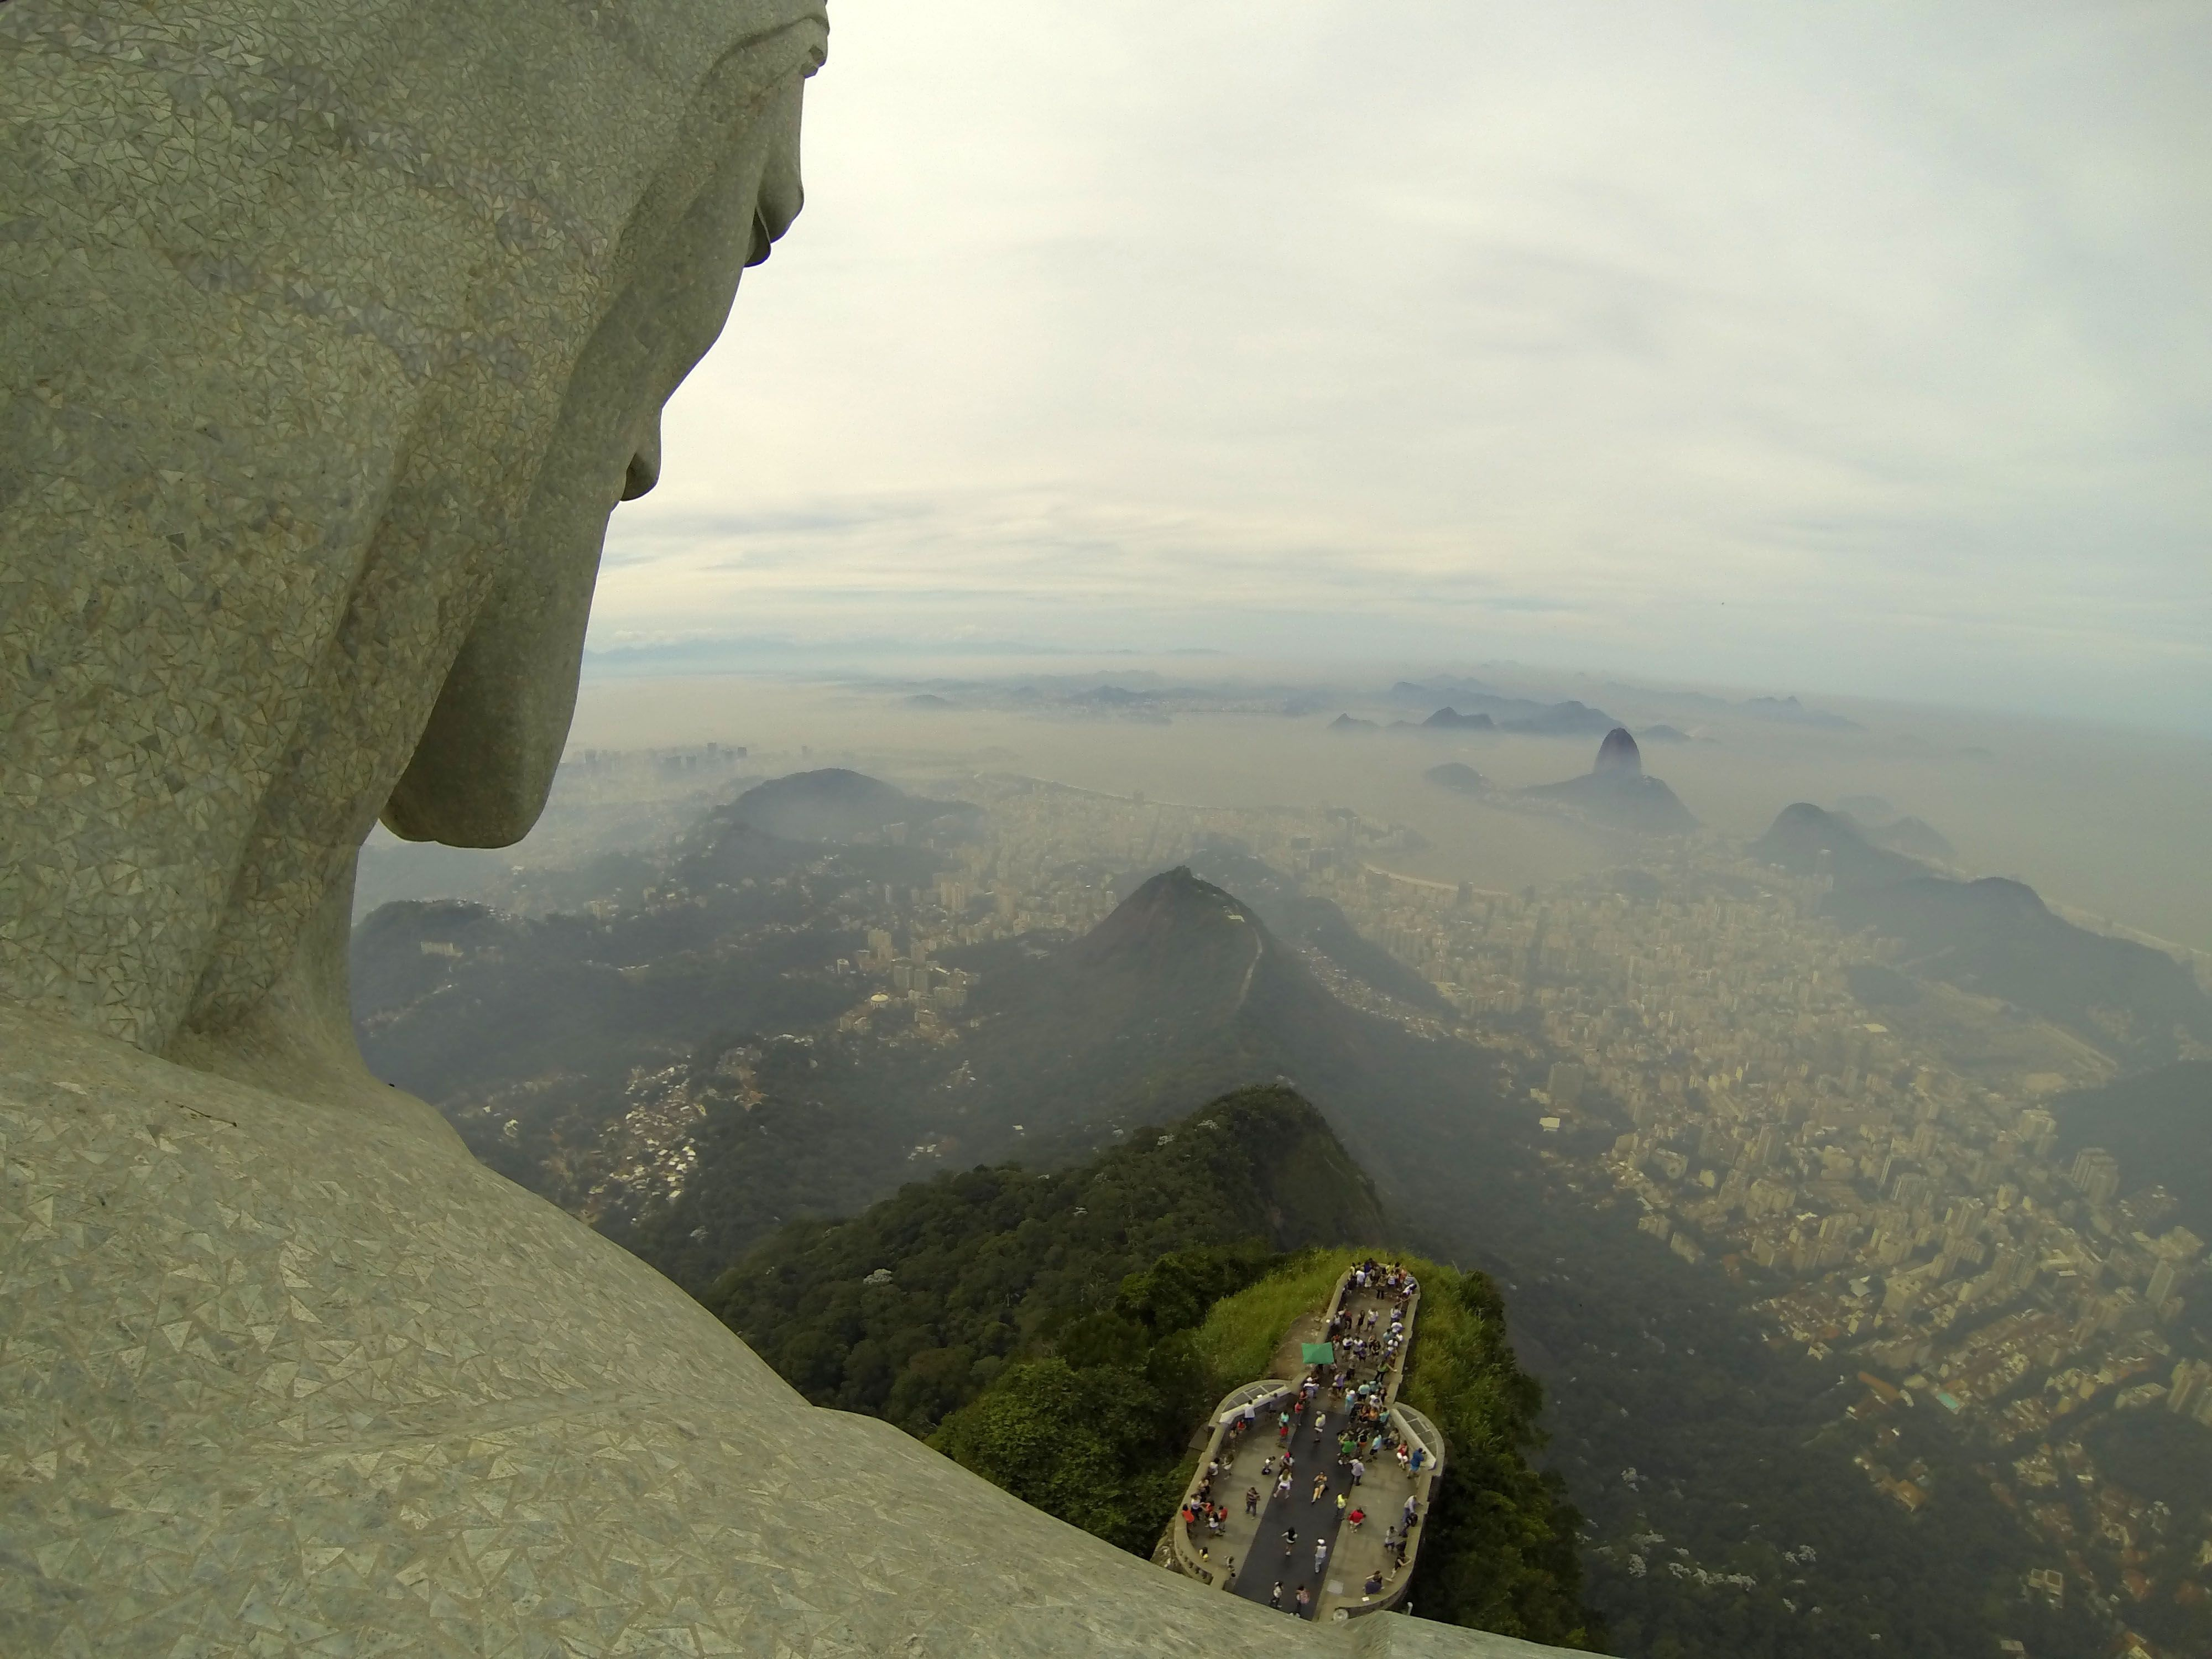 Lee Cofounder Of The Flash Pack Get Exclusive Access To Christ - Guy takes epic selfie top christ redeemer statue brazil